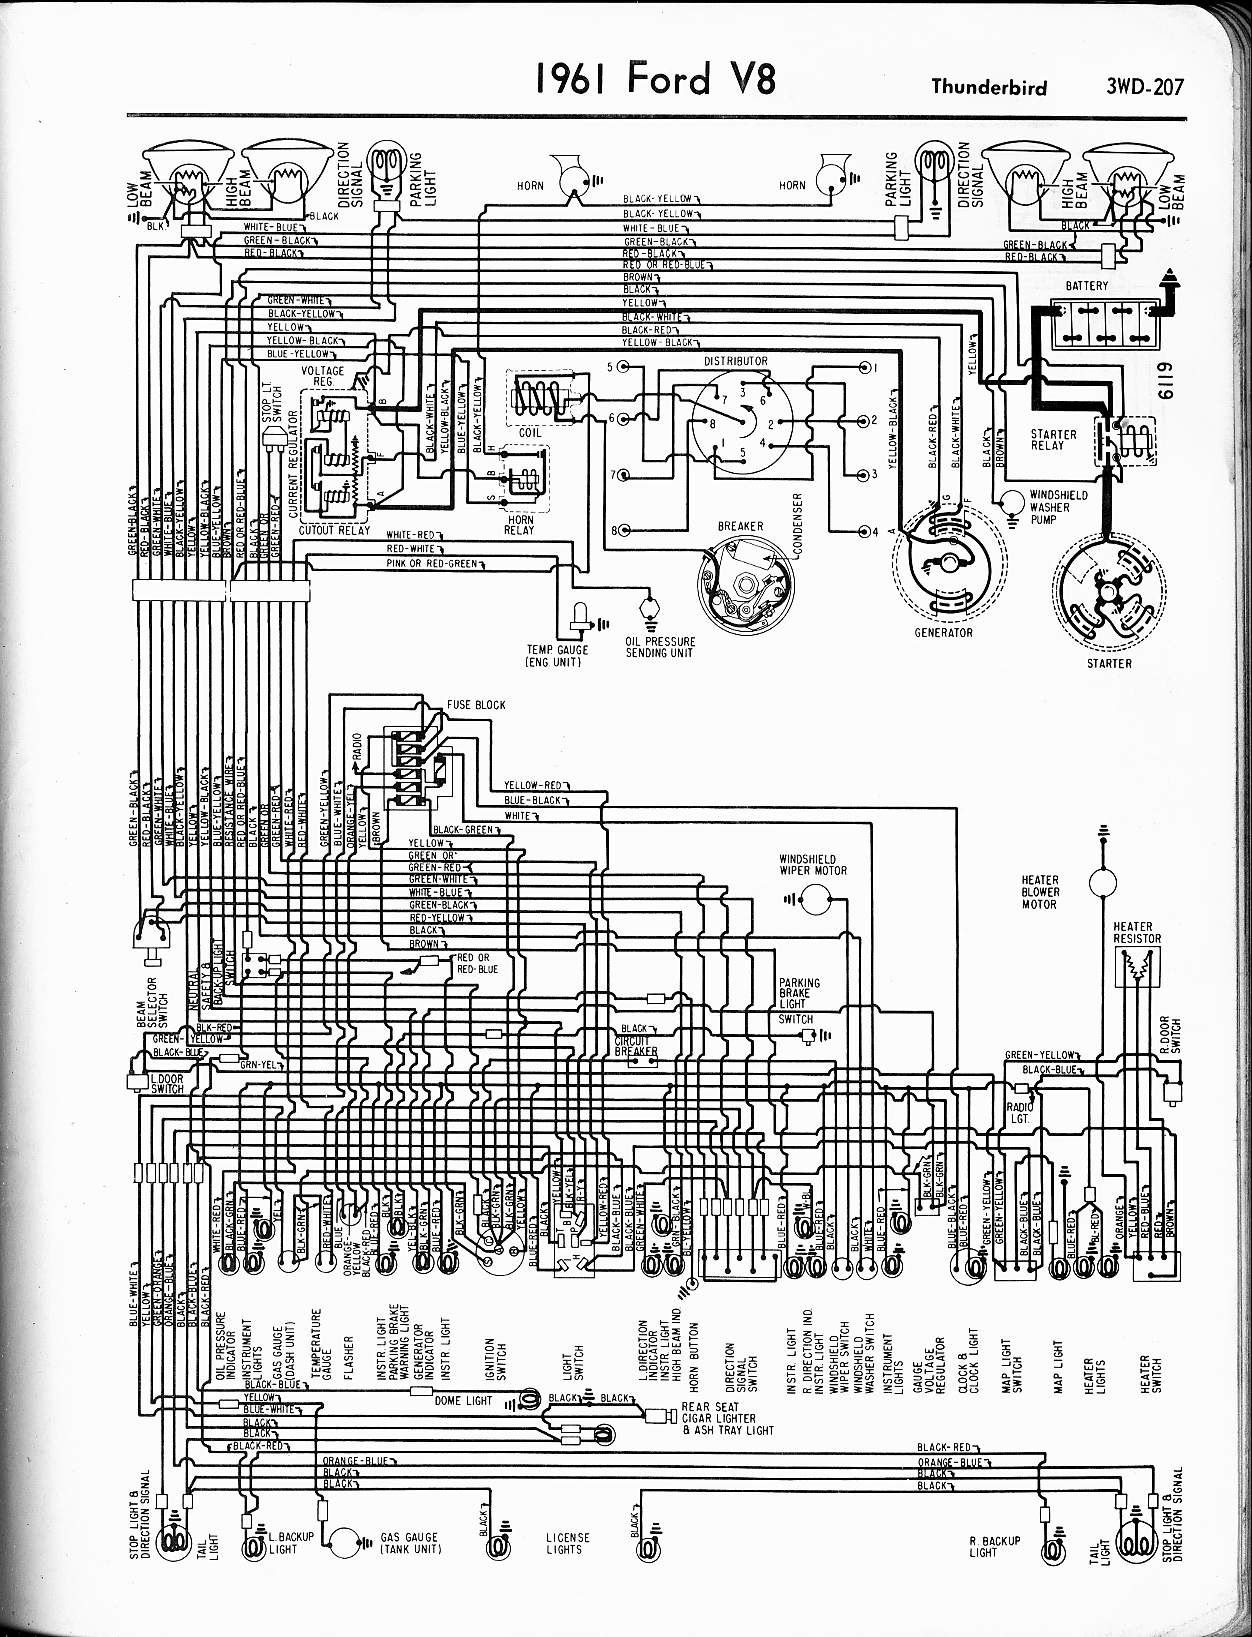 diagram] 1957 ford thunderbird underhood wiring diagram full version hd  quality wiring diagram - wiringtocode1c.osteriamadreterra.it  osteria madre terra